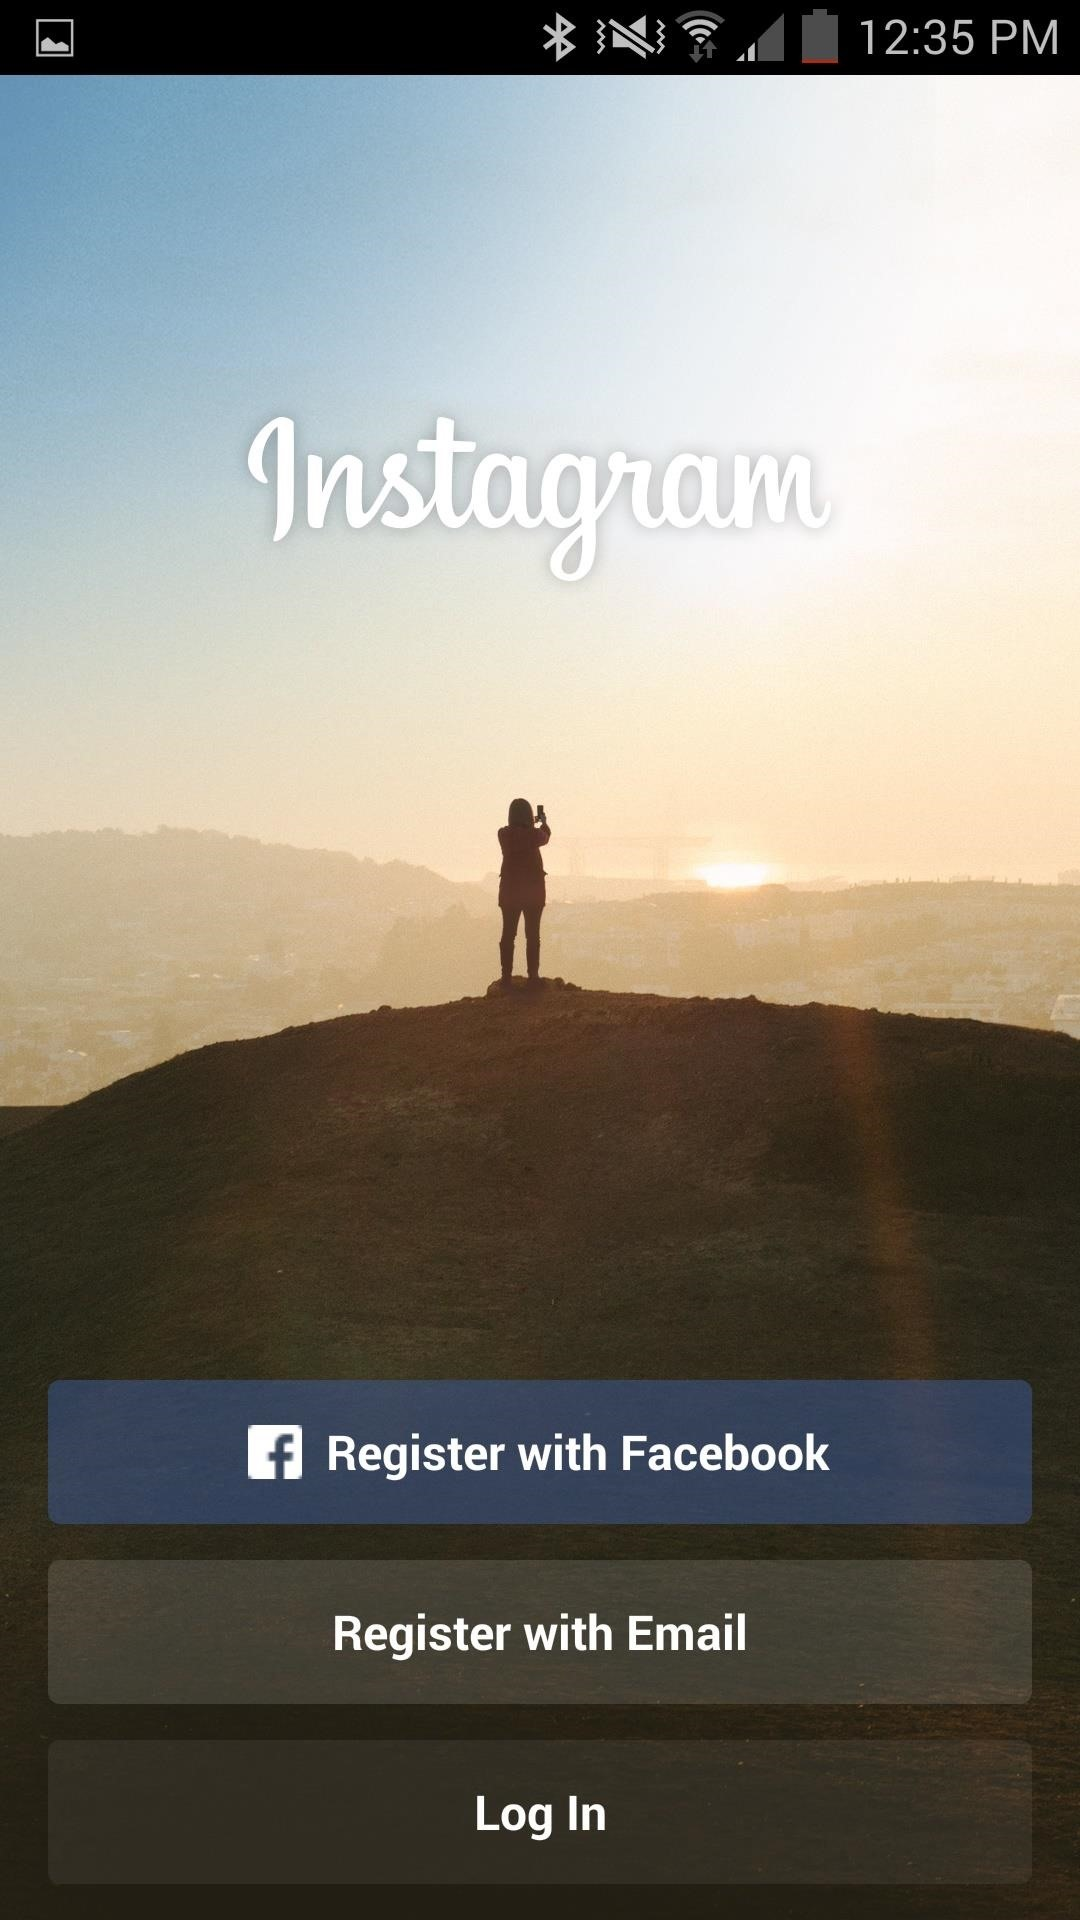 Download Instagram Pics & Videos on Android Without Rooting